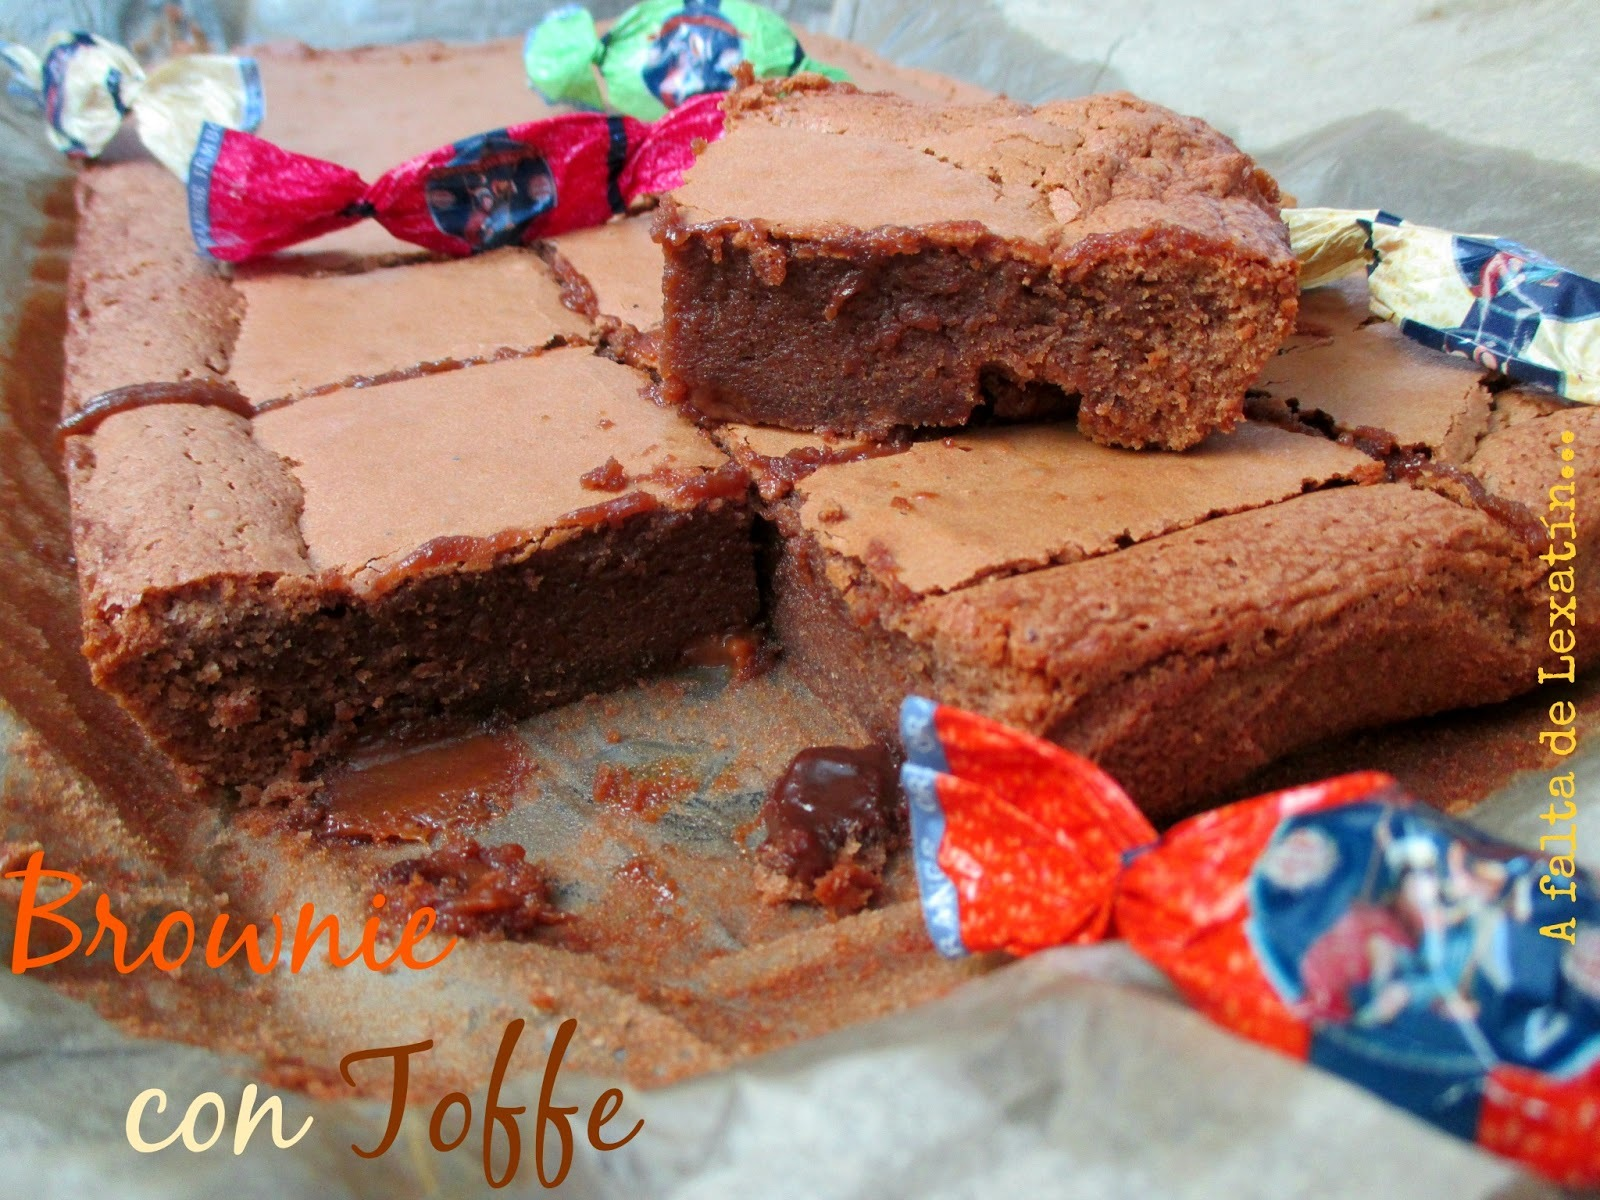 Brownie con toffe